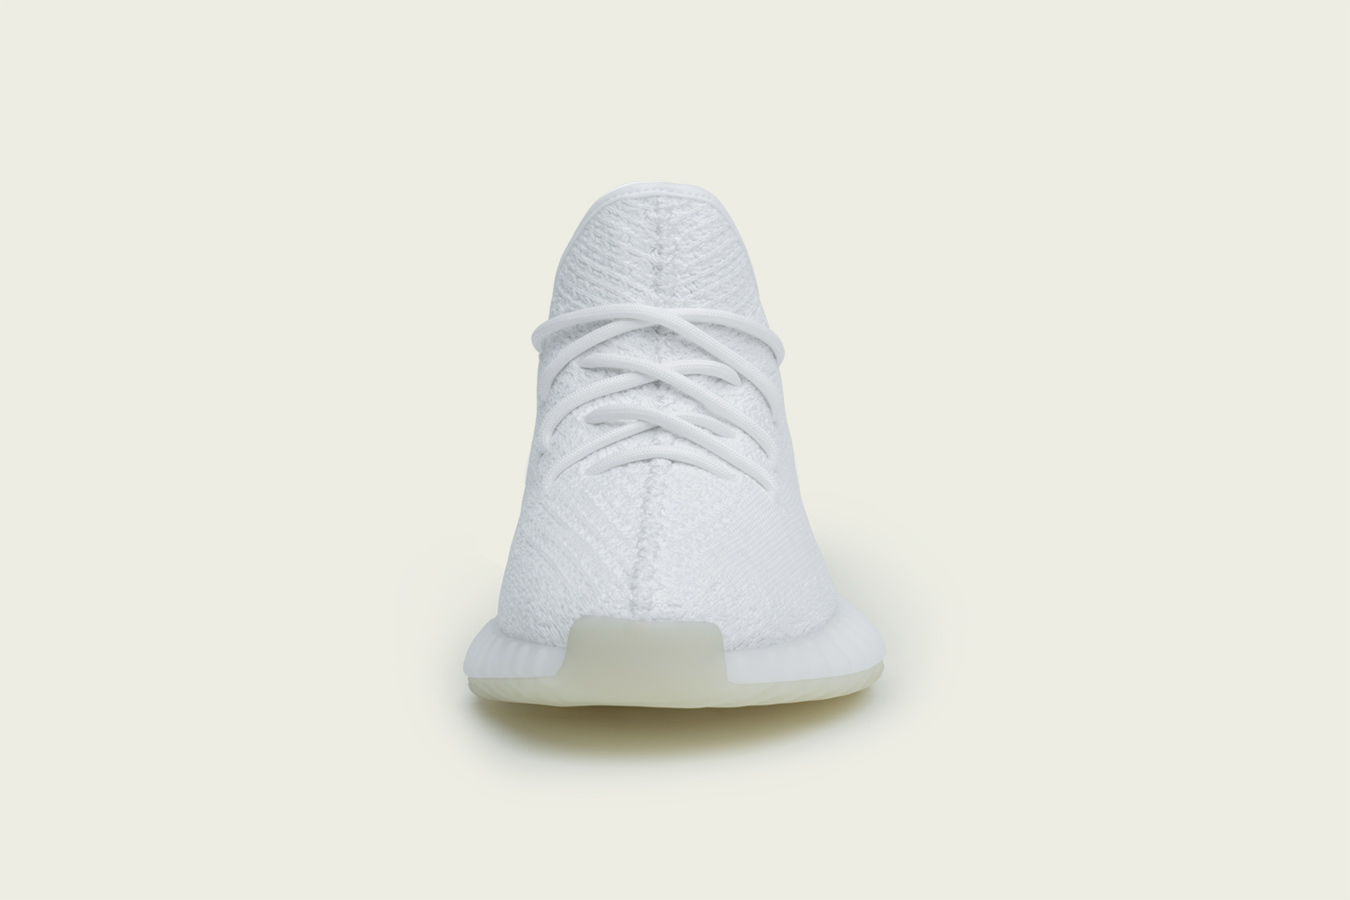 adidas Yeezy Boost 350 V2 Cream White CP9366 1